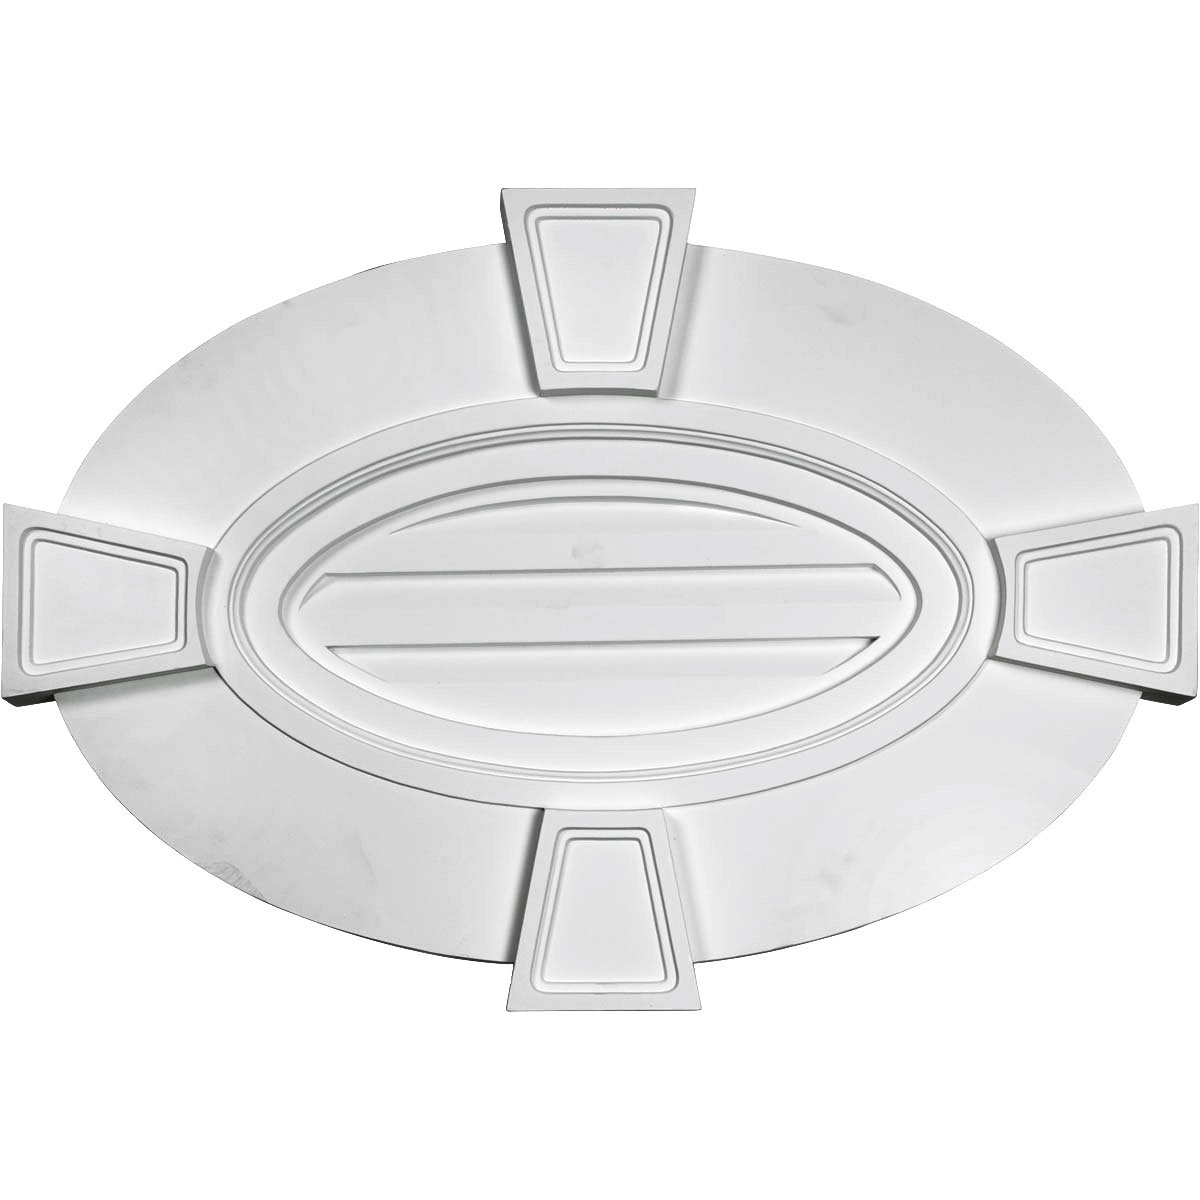 Ekena Millwork GVOV29X20D 29-Inch W x 20-Inch H x 1 3/4-Inch P Horizontal Oval Gable Vent Louver with Flat Trim  and  Keystones, Decorative